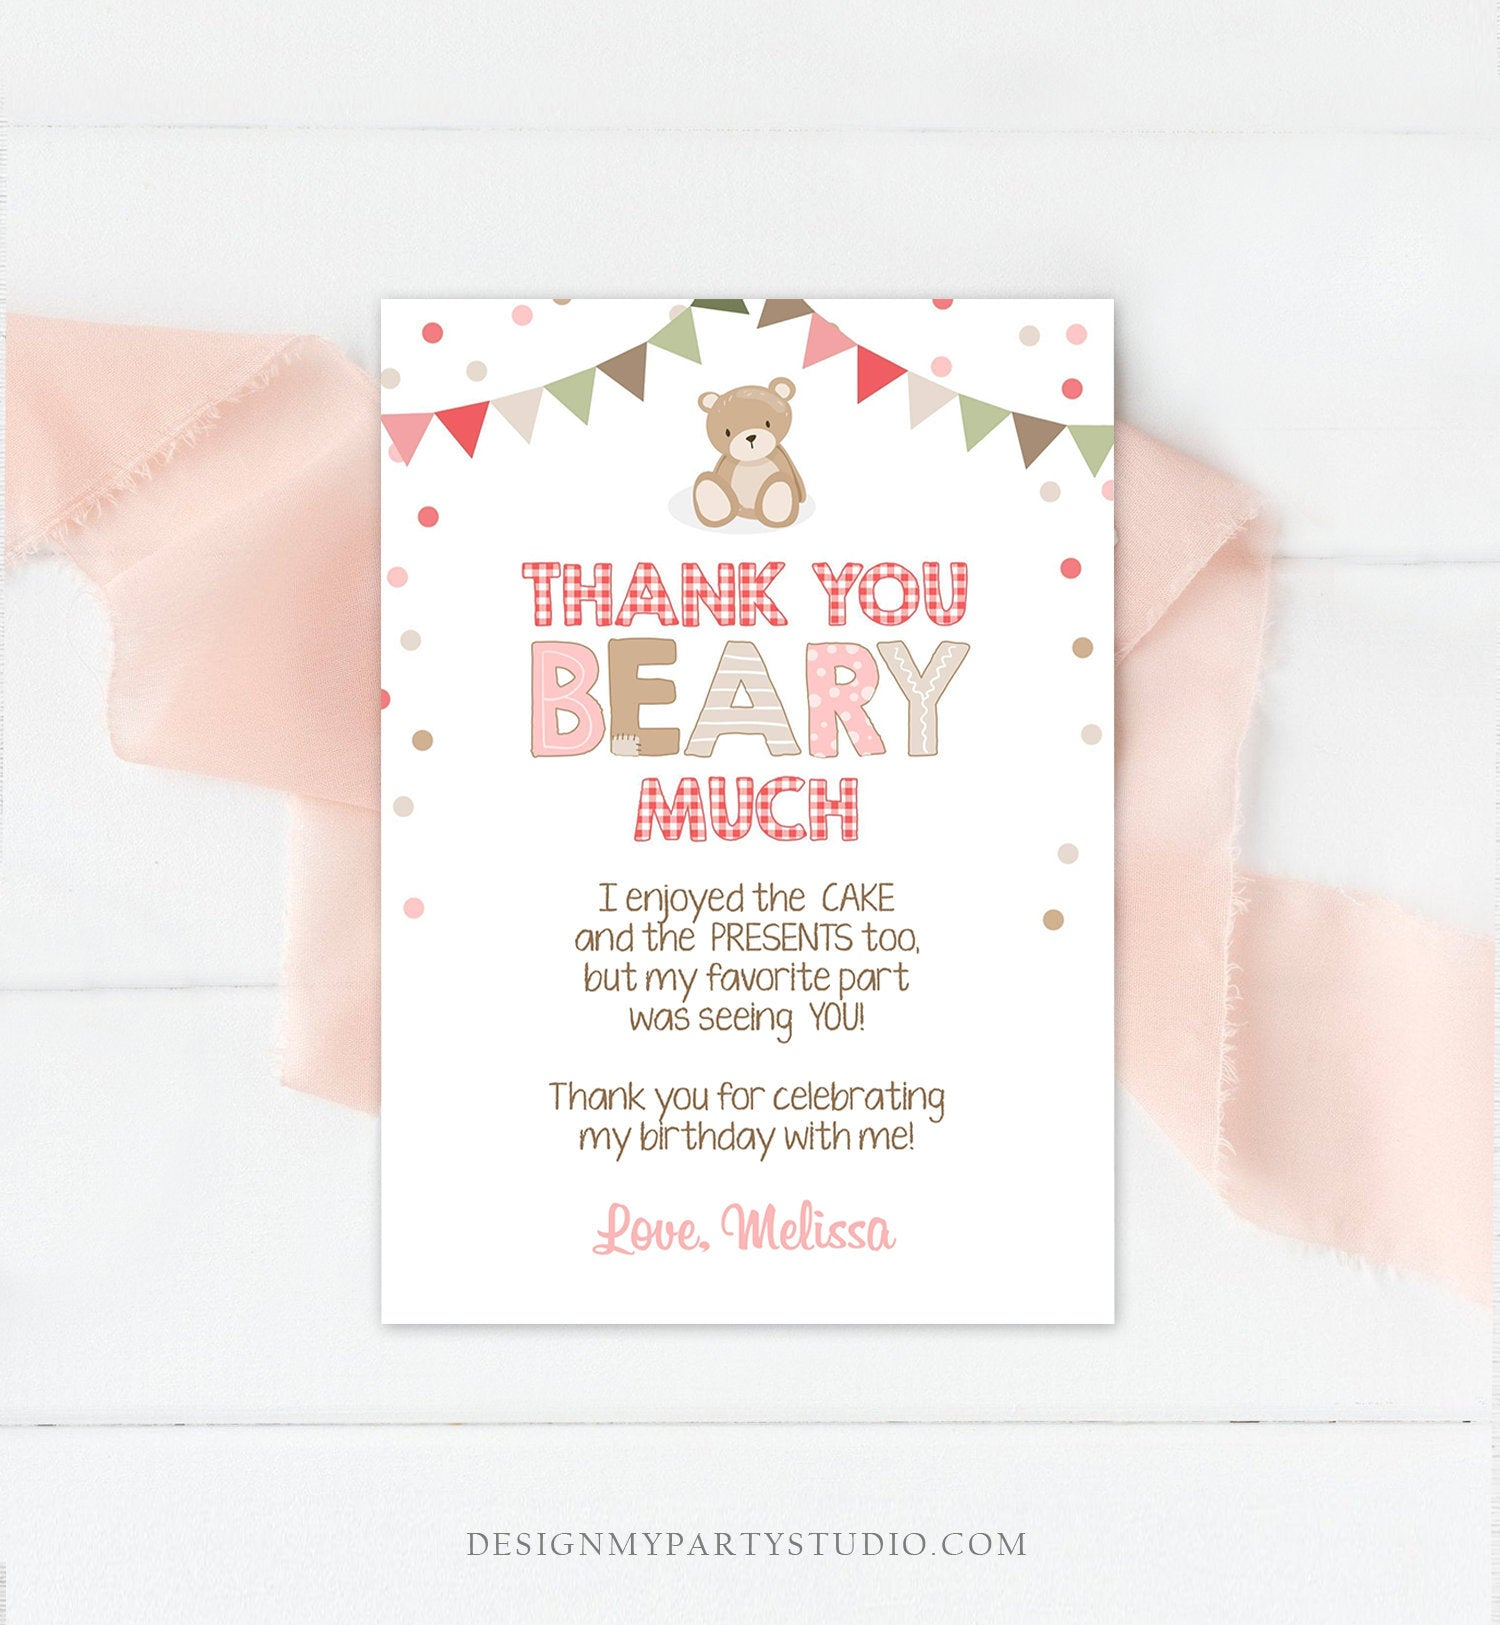 Editable Thank You Card Teddy Bear Birthday Picnic Beary Much Girl Pink Woodland Download Printable Thank You Template Digital Corjl 0100